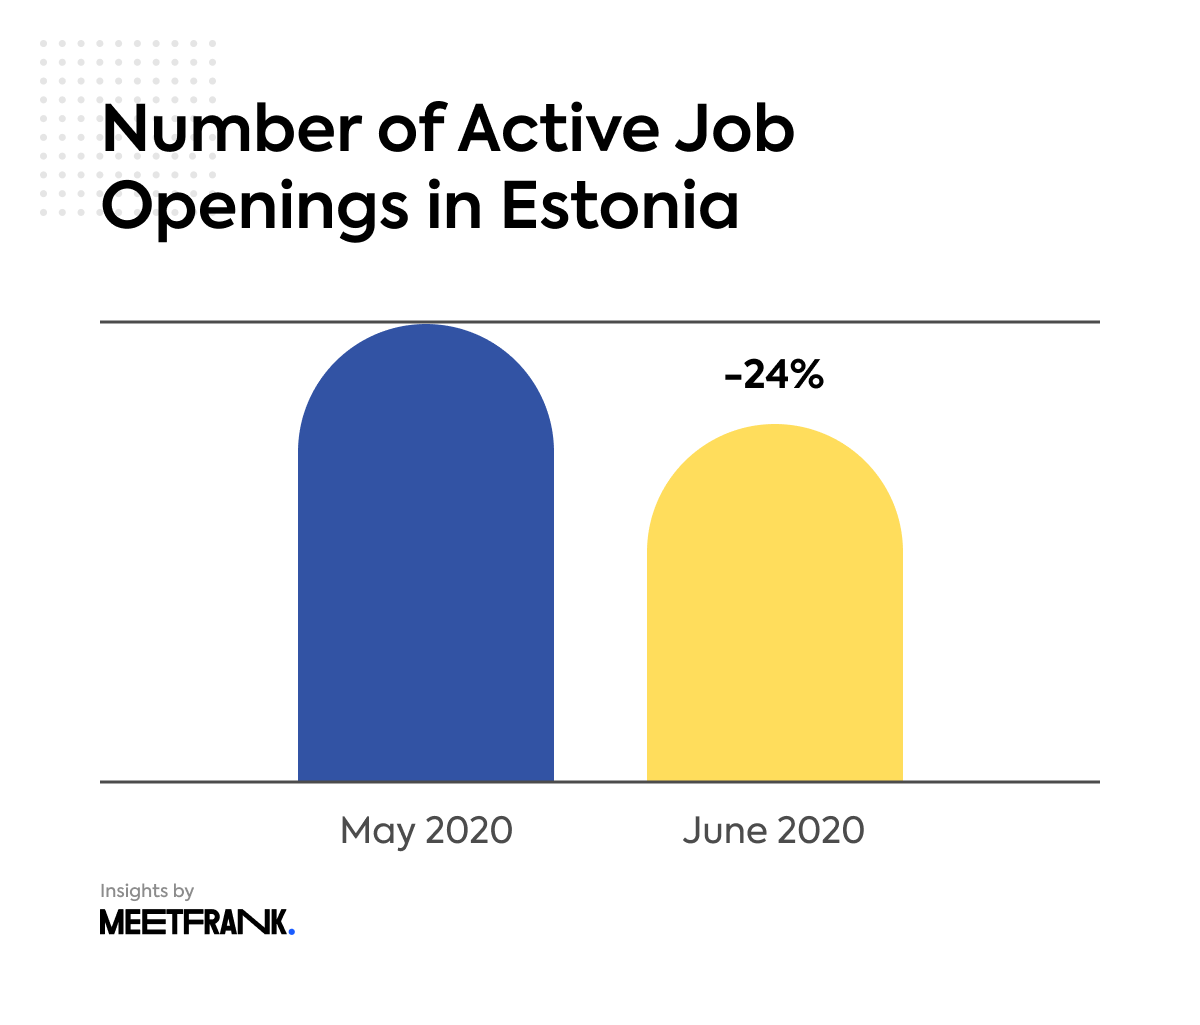 active job openings in Estonia